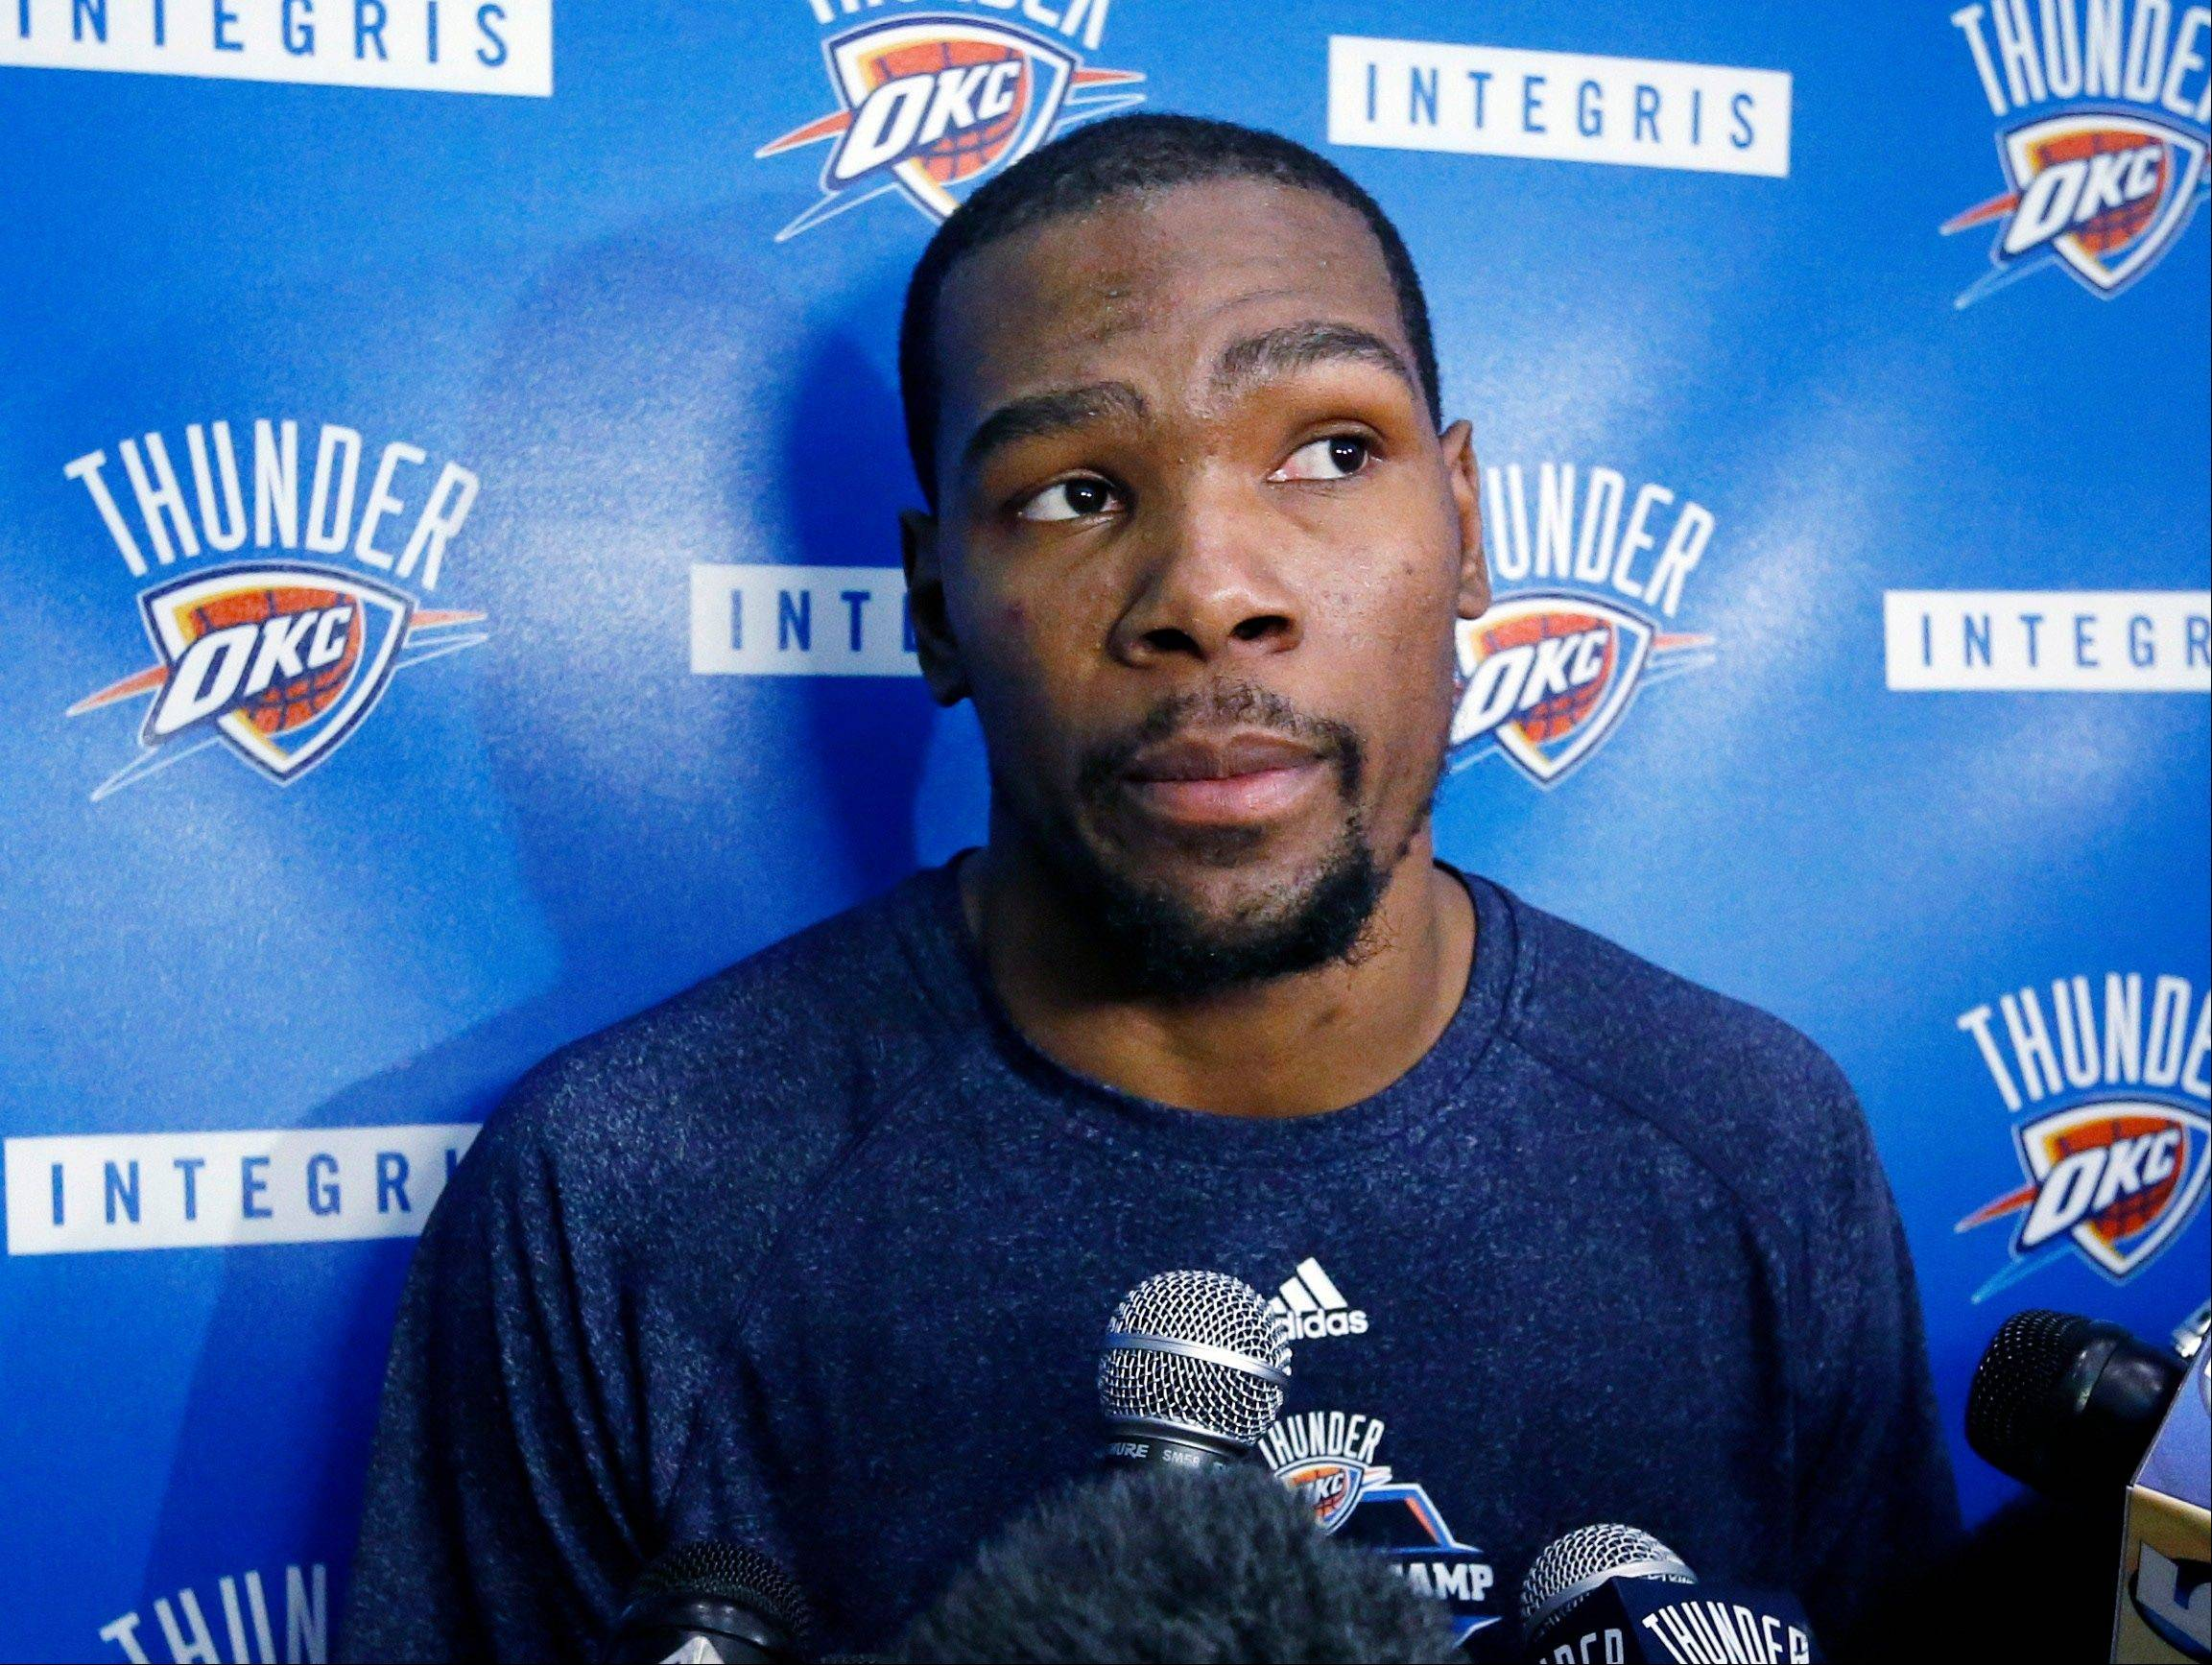 Oklahoma City Thunder forward Kevin Durant answers a question during a news conference at NBA basketball practice in Oklahoma City, Friday, April 26, 2013. All-Star point guard Russell Westbrook will have surgery to repair cartilage in his right knee and be out indefinitely, dealing a harsh blow to the Thunder's championship chances.